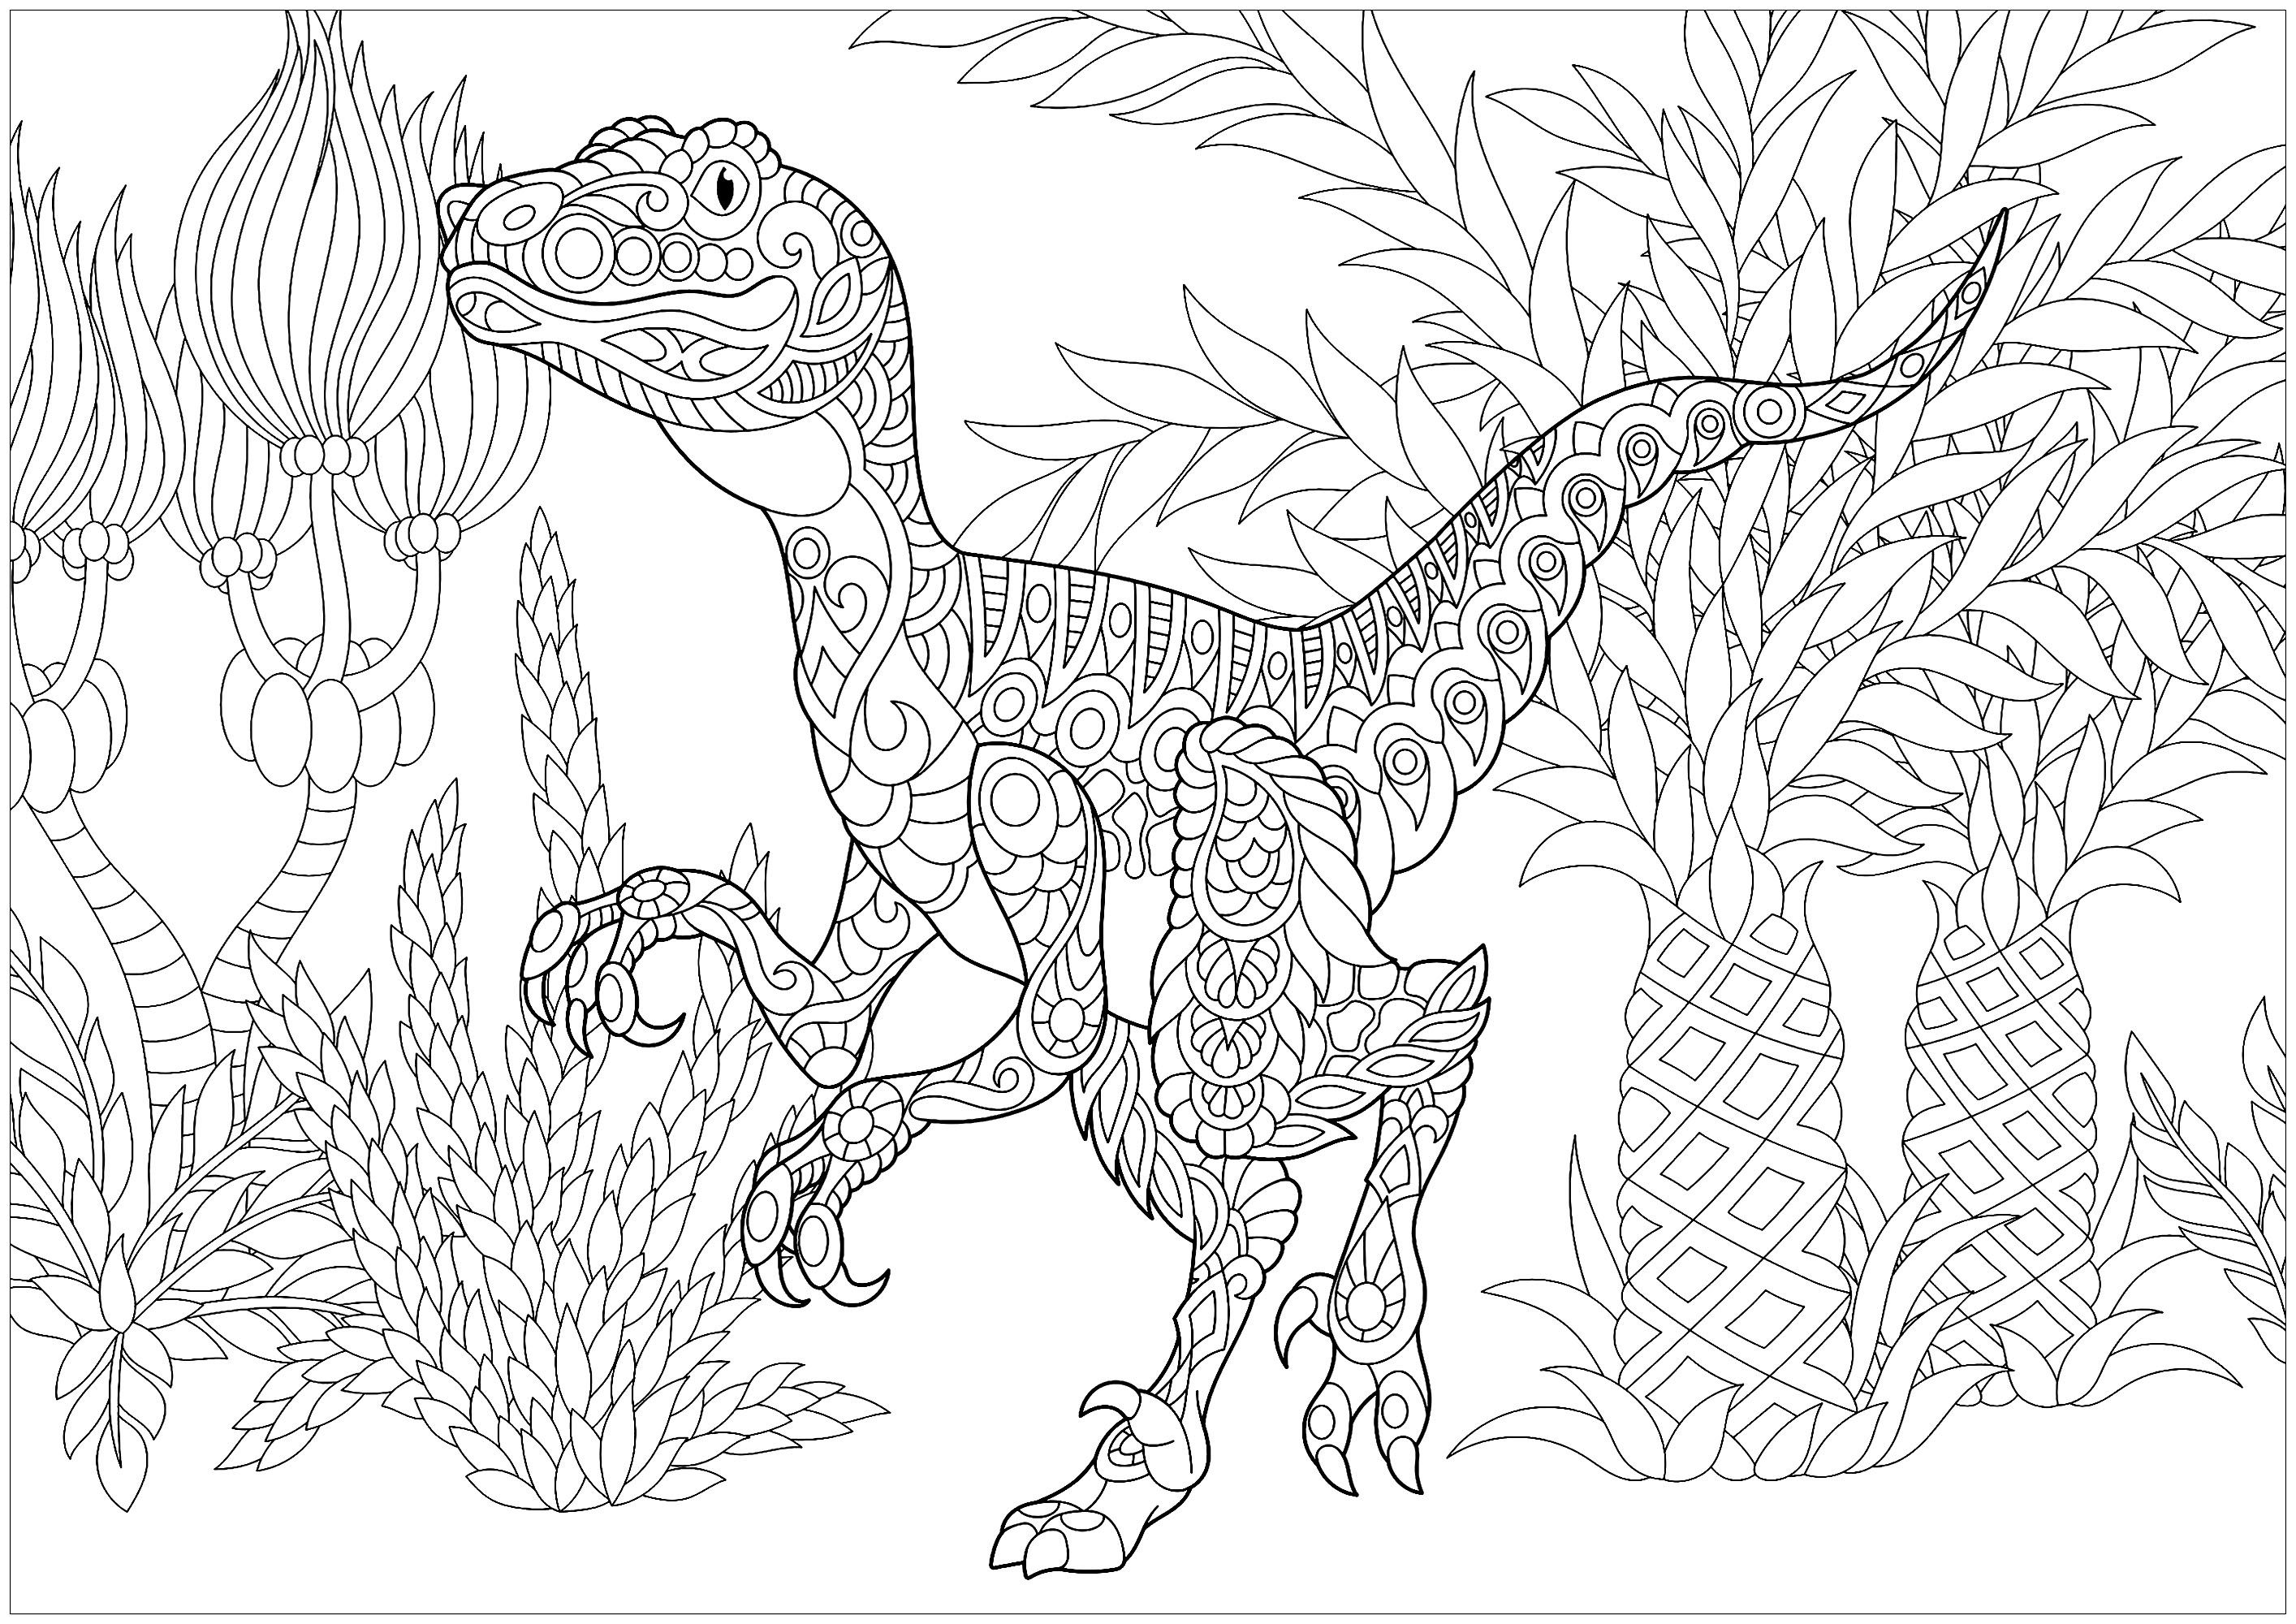 Stylized Velociraptor Dinosaur With Doodle And Zentangle Elements Dinosaur Coloring Pages Animal Coloring Pages Dinosaur Coloring